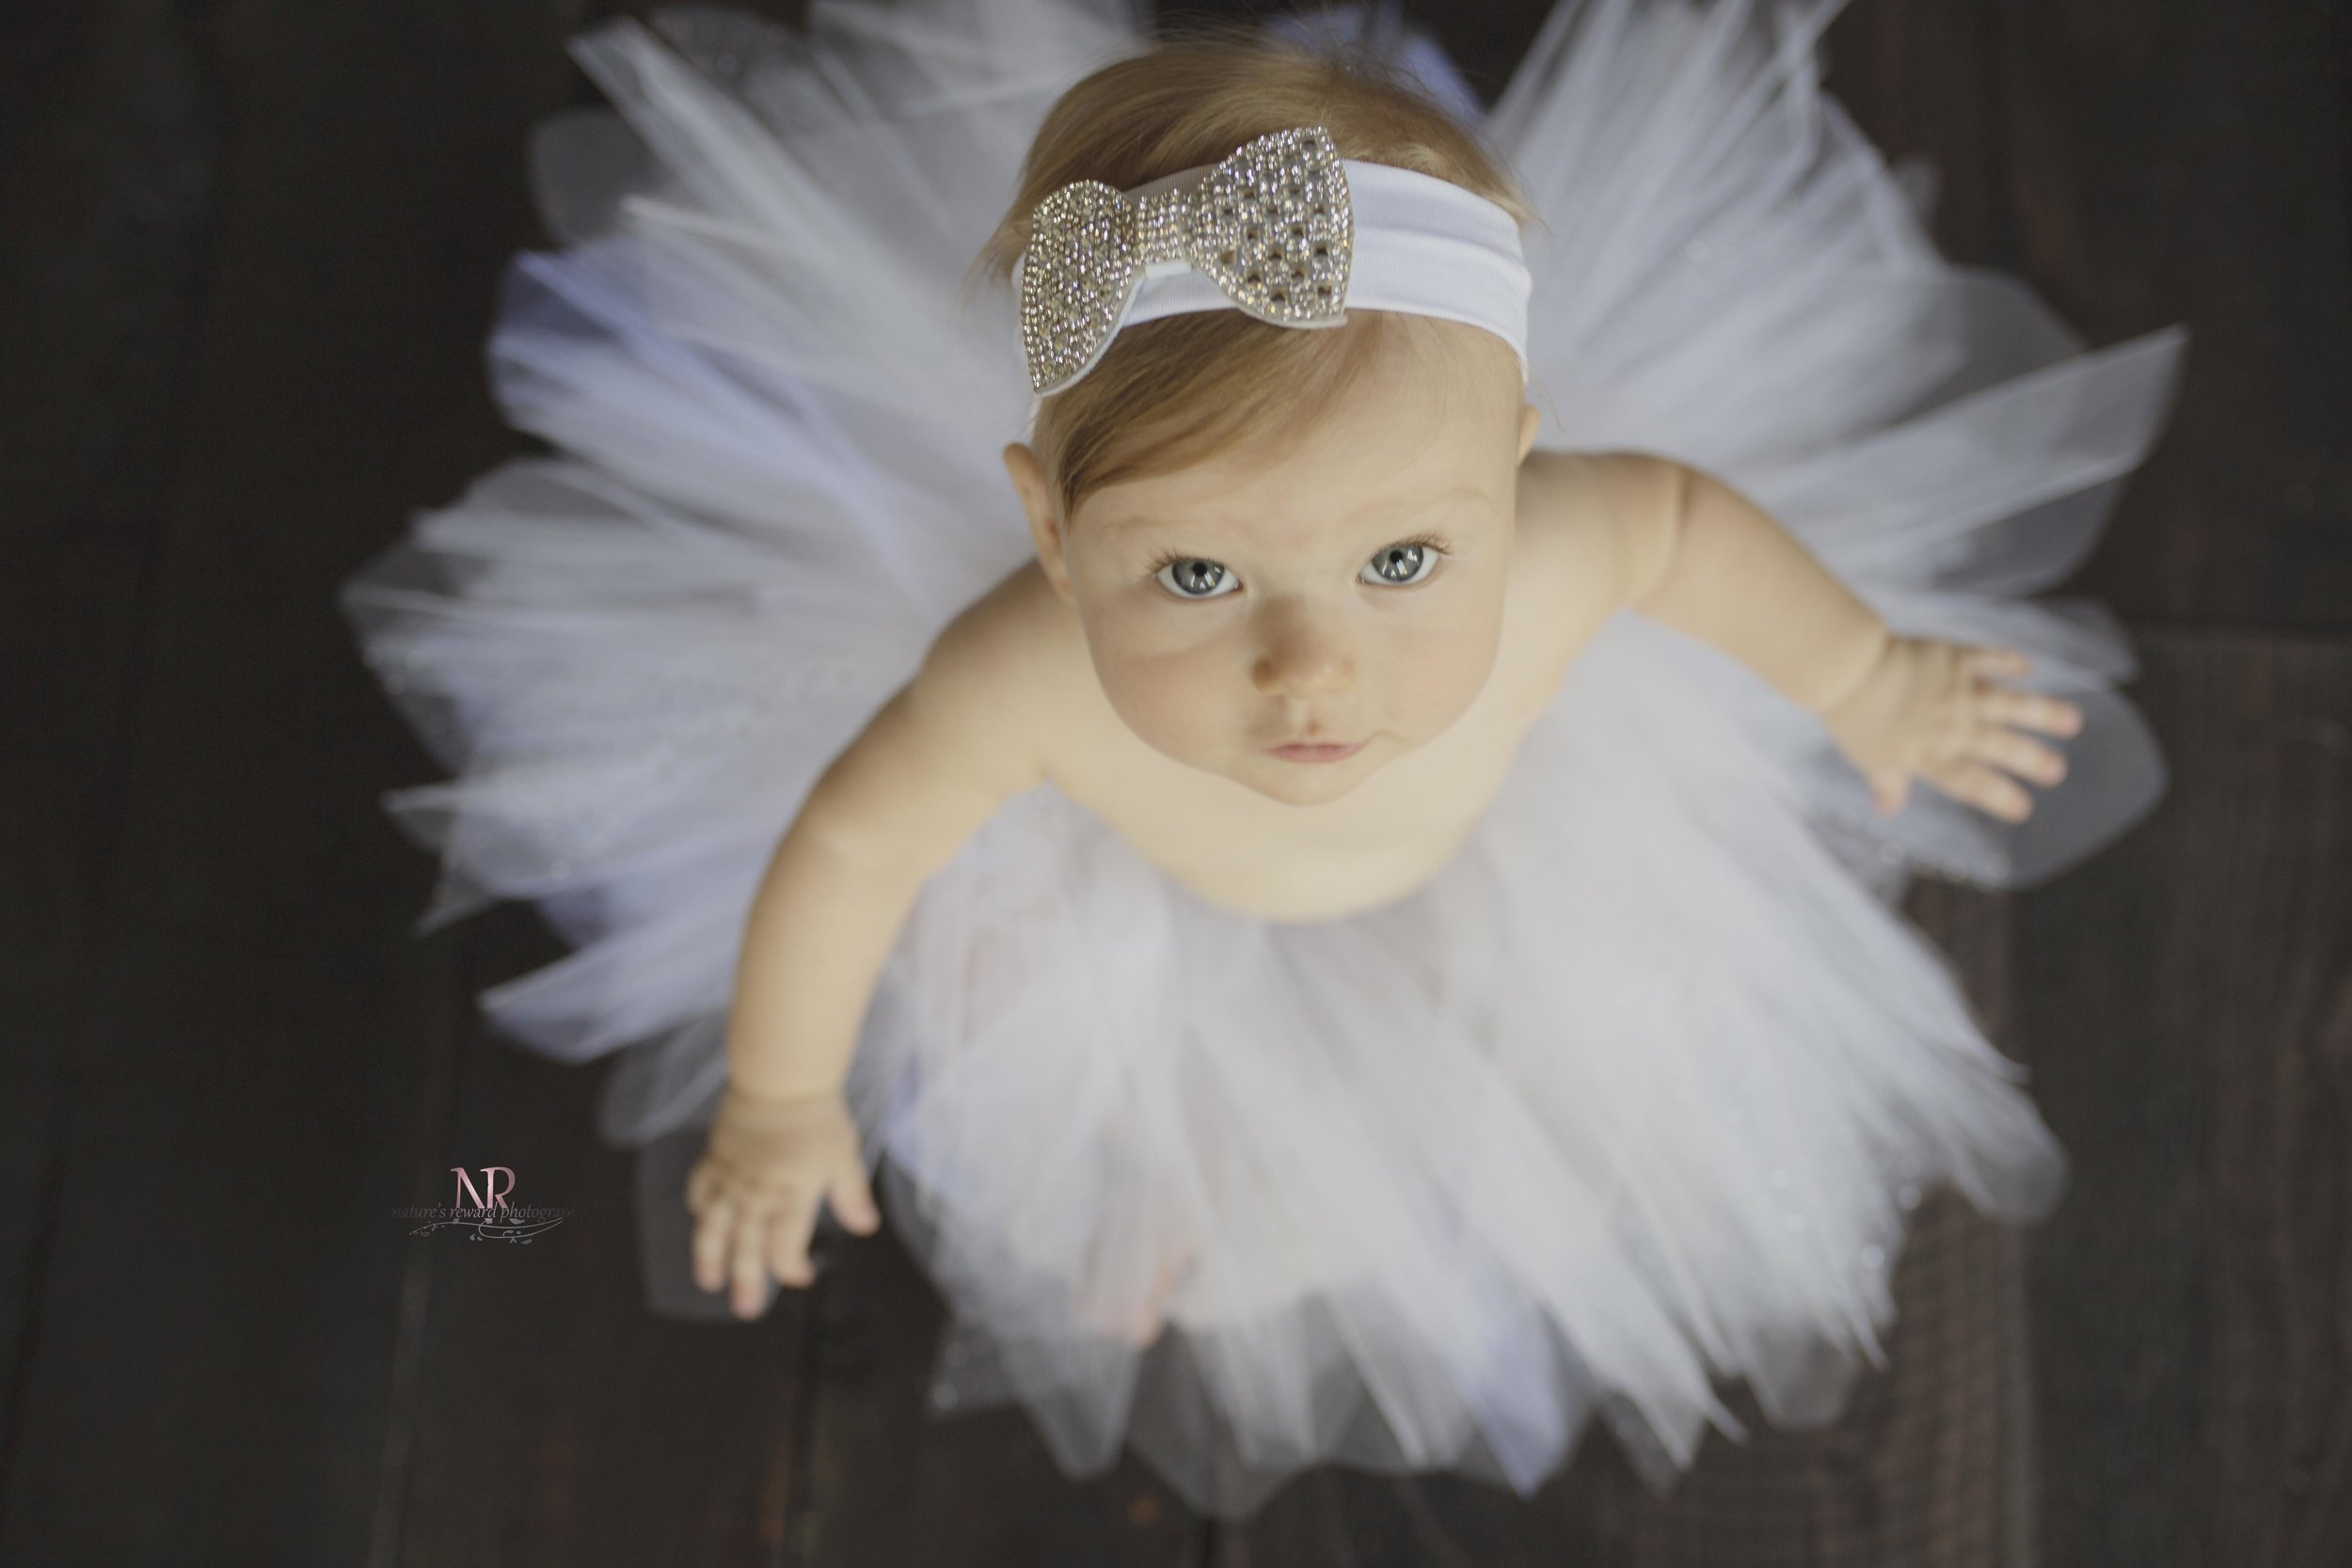 Small change here- but i love the looking up like this. Her Eyes pop and she looks like a baby doll ballerina!